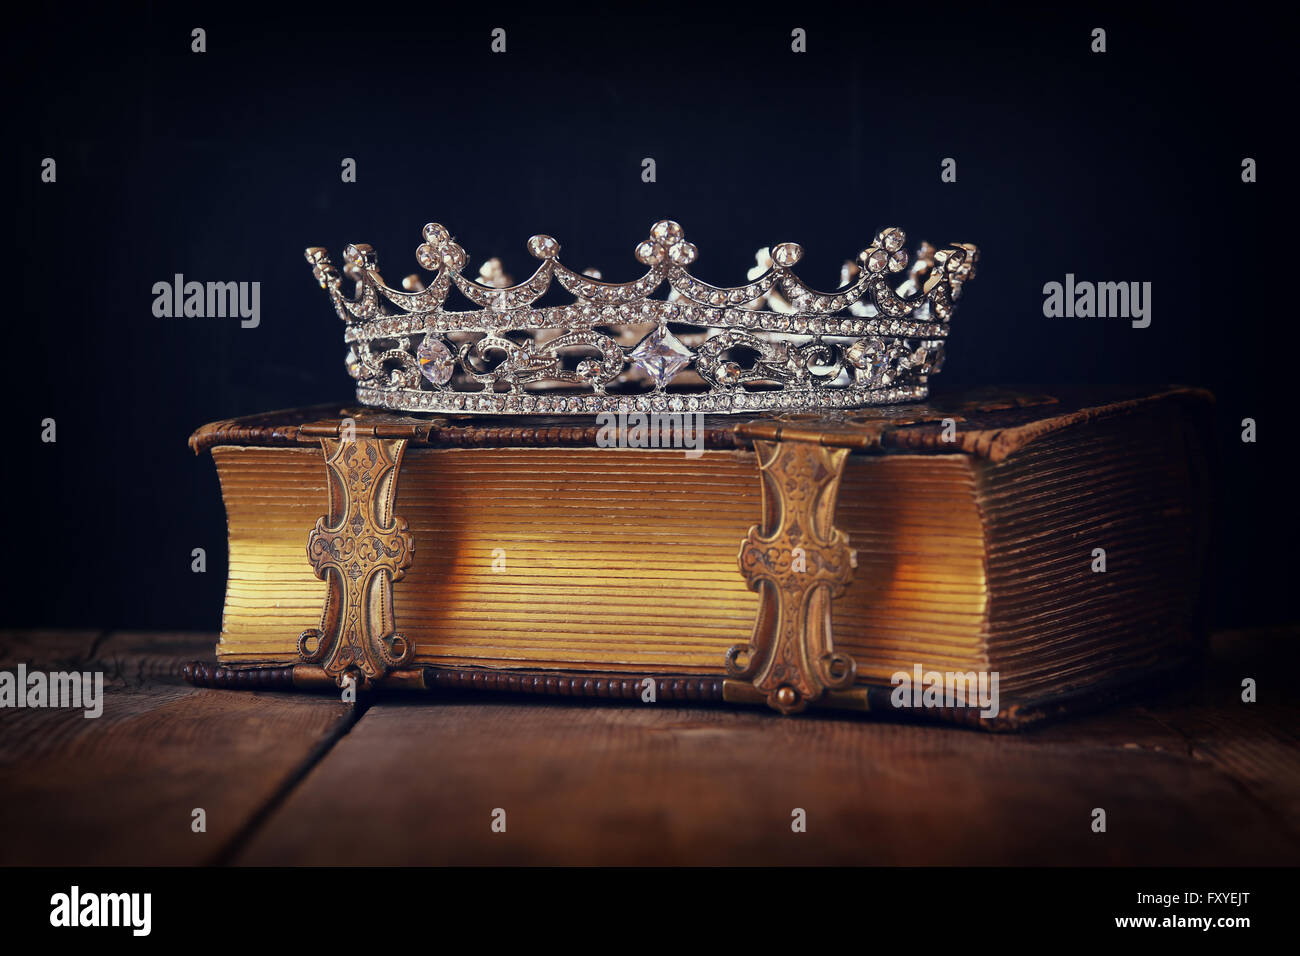 decorative crown on old book. vintage filtered. selective focus. - Stock  Image f0ab4ac2369c